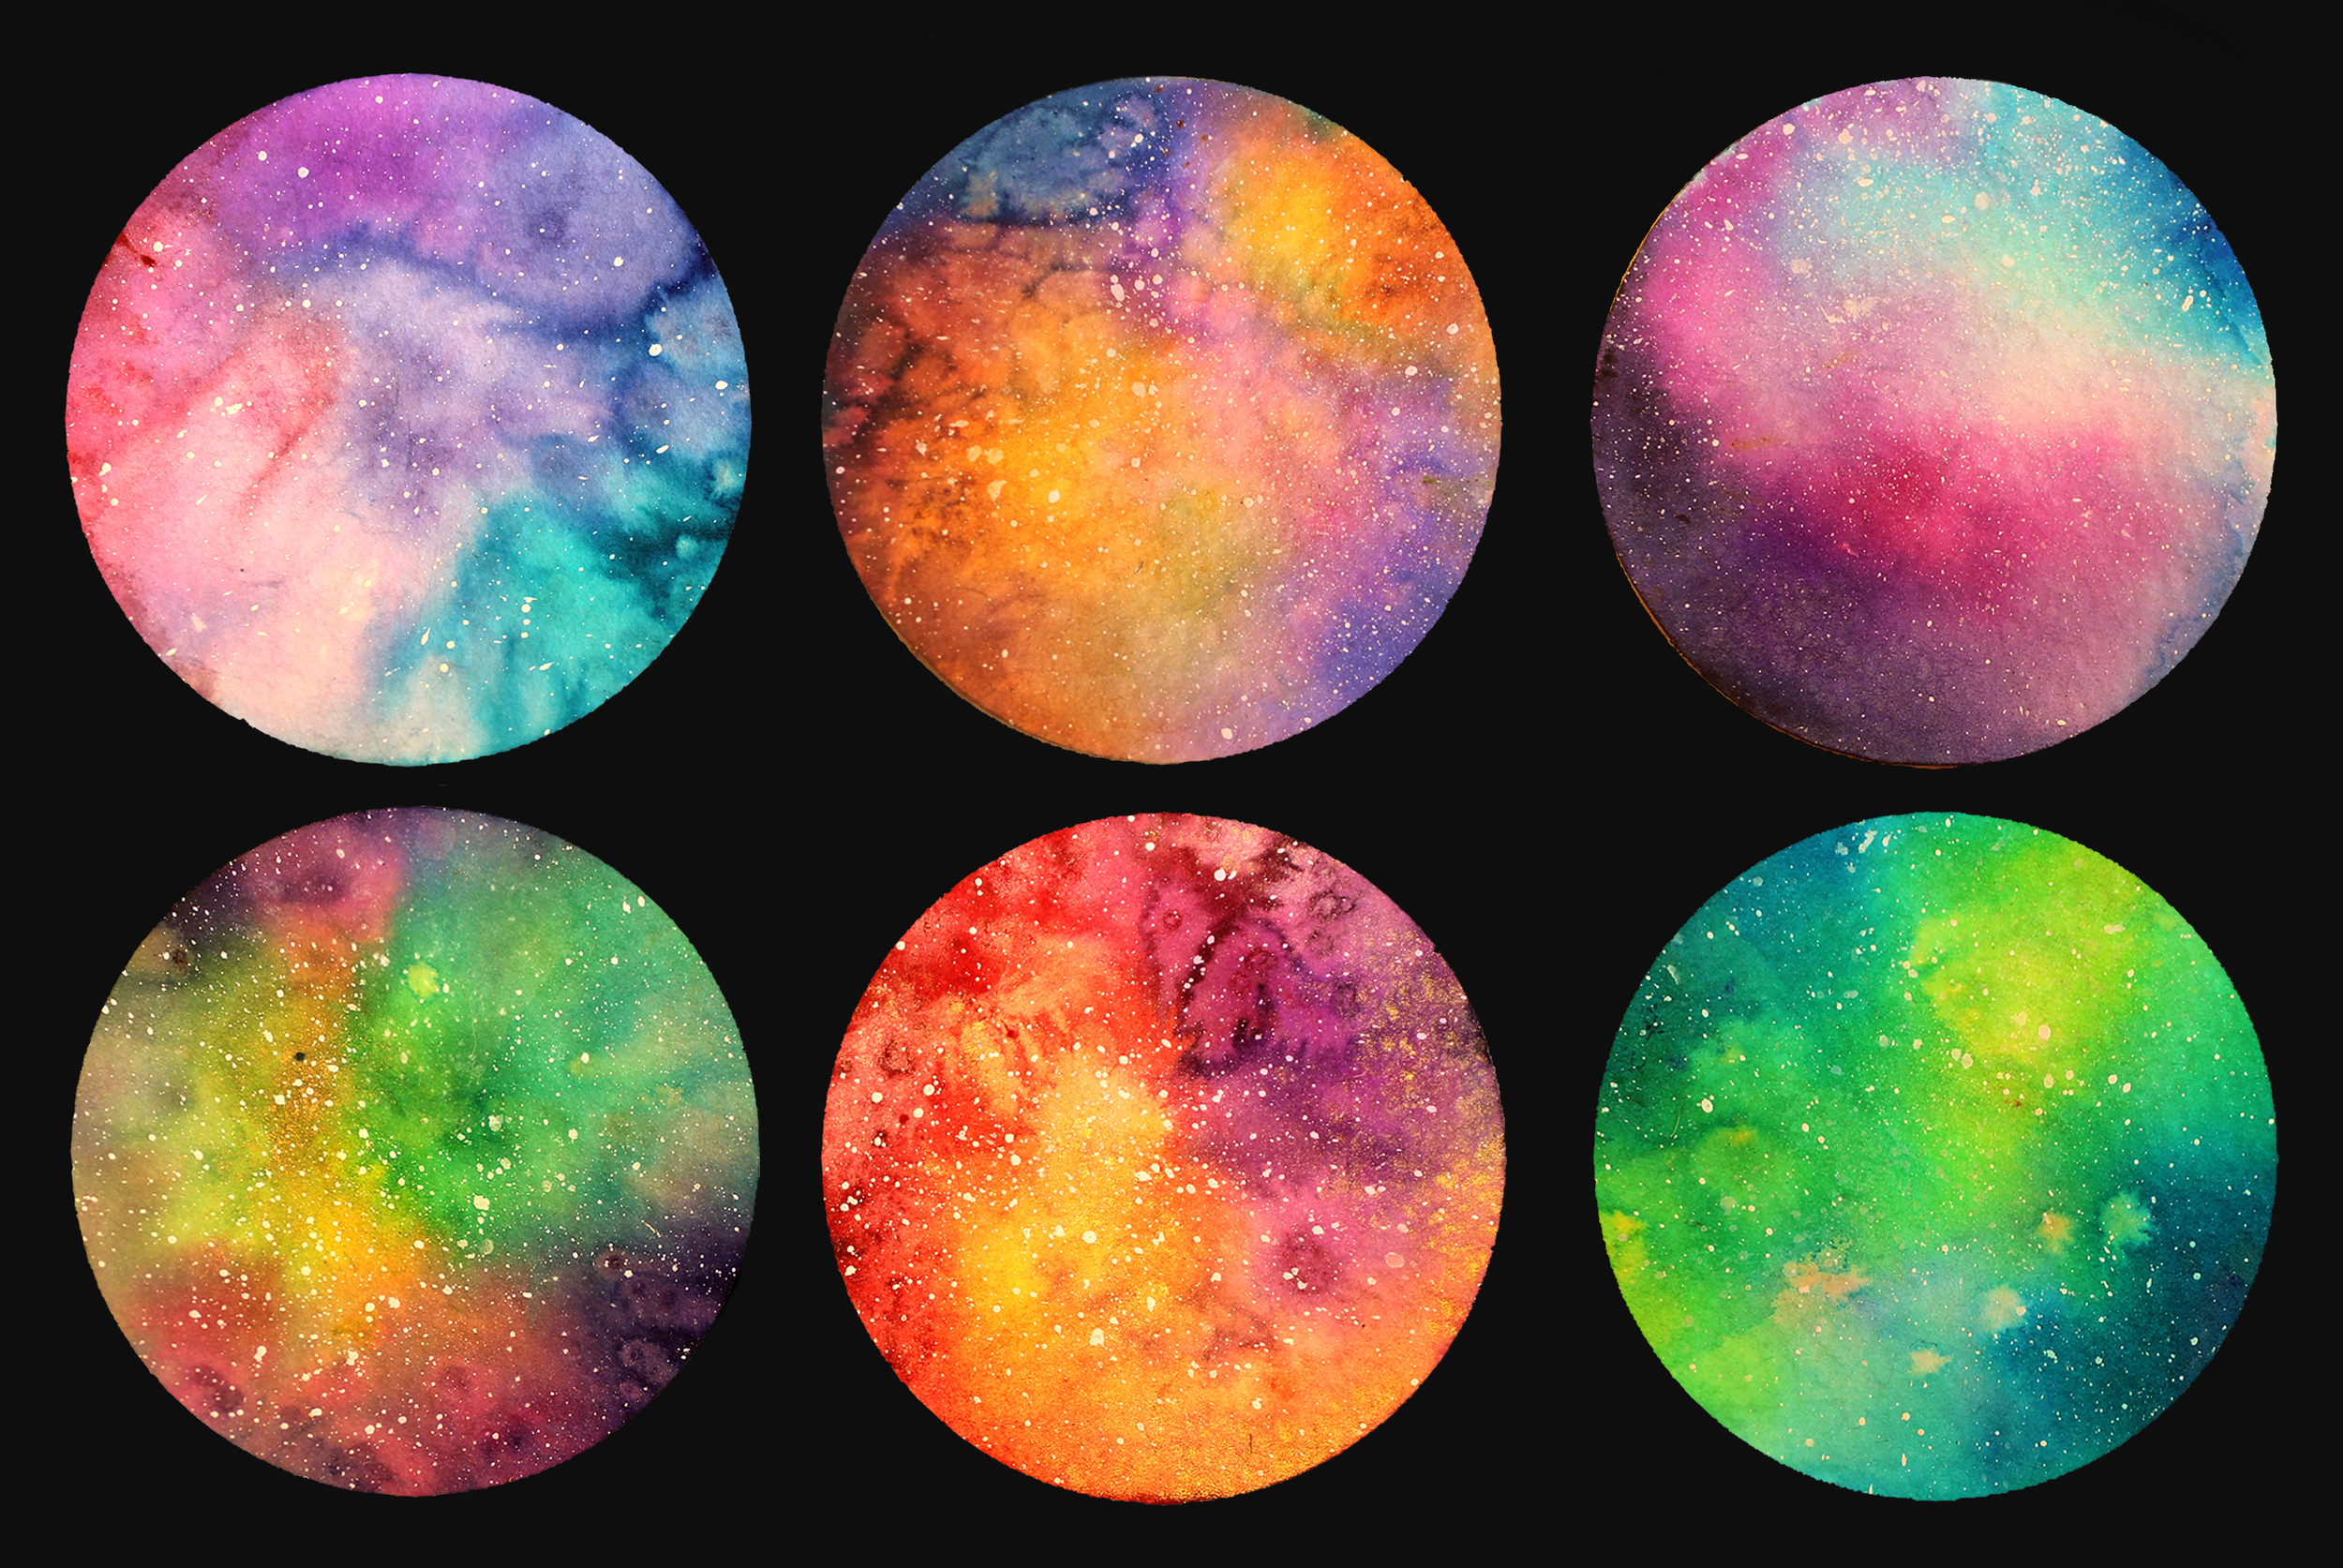 watercolor_tiny_nebulae_by_euminee-d957q5x.png